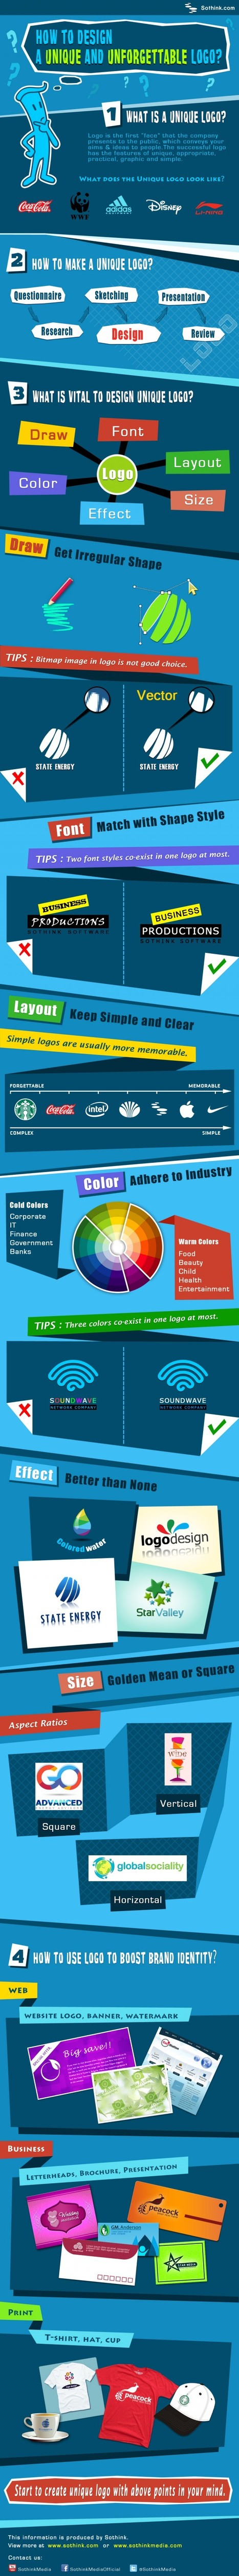 How to Design a Logo [Infographic] | Educational  Technology | Scoop.it